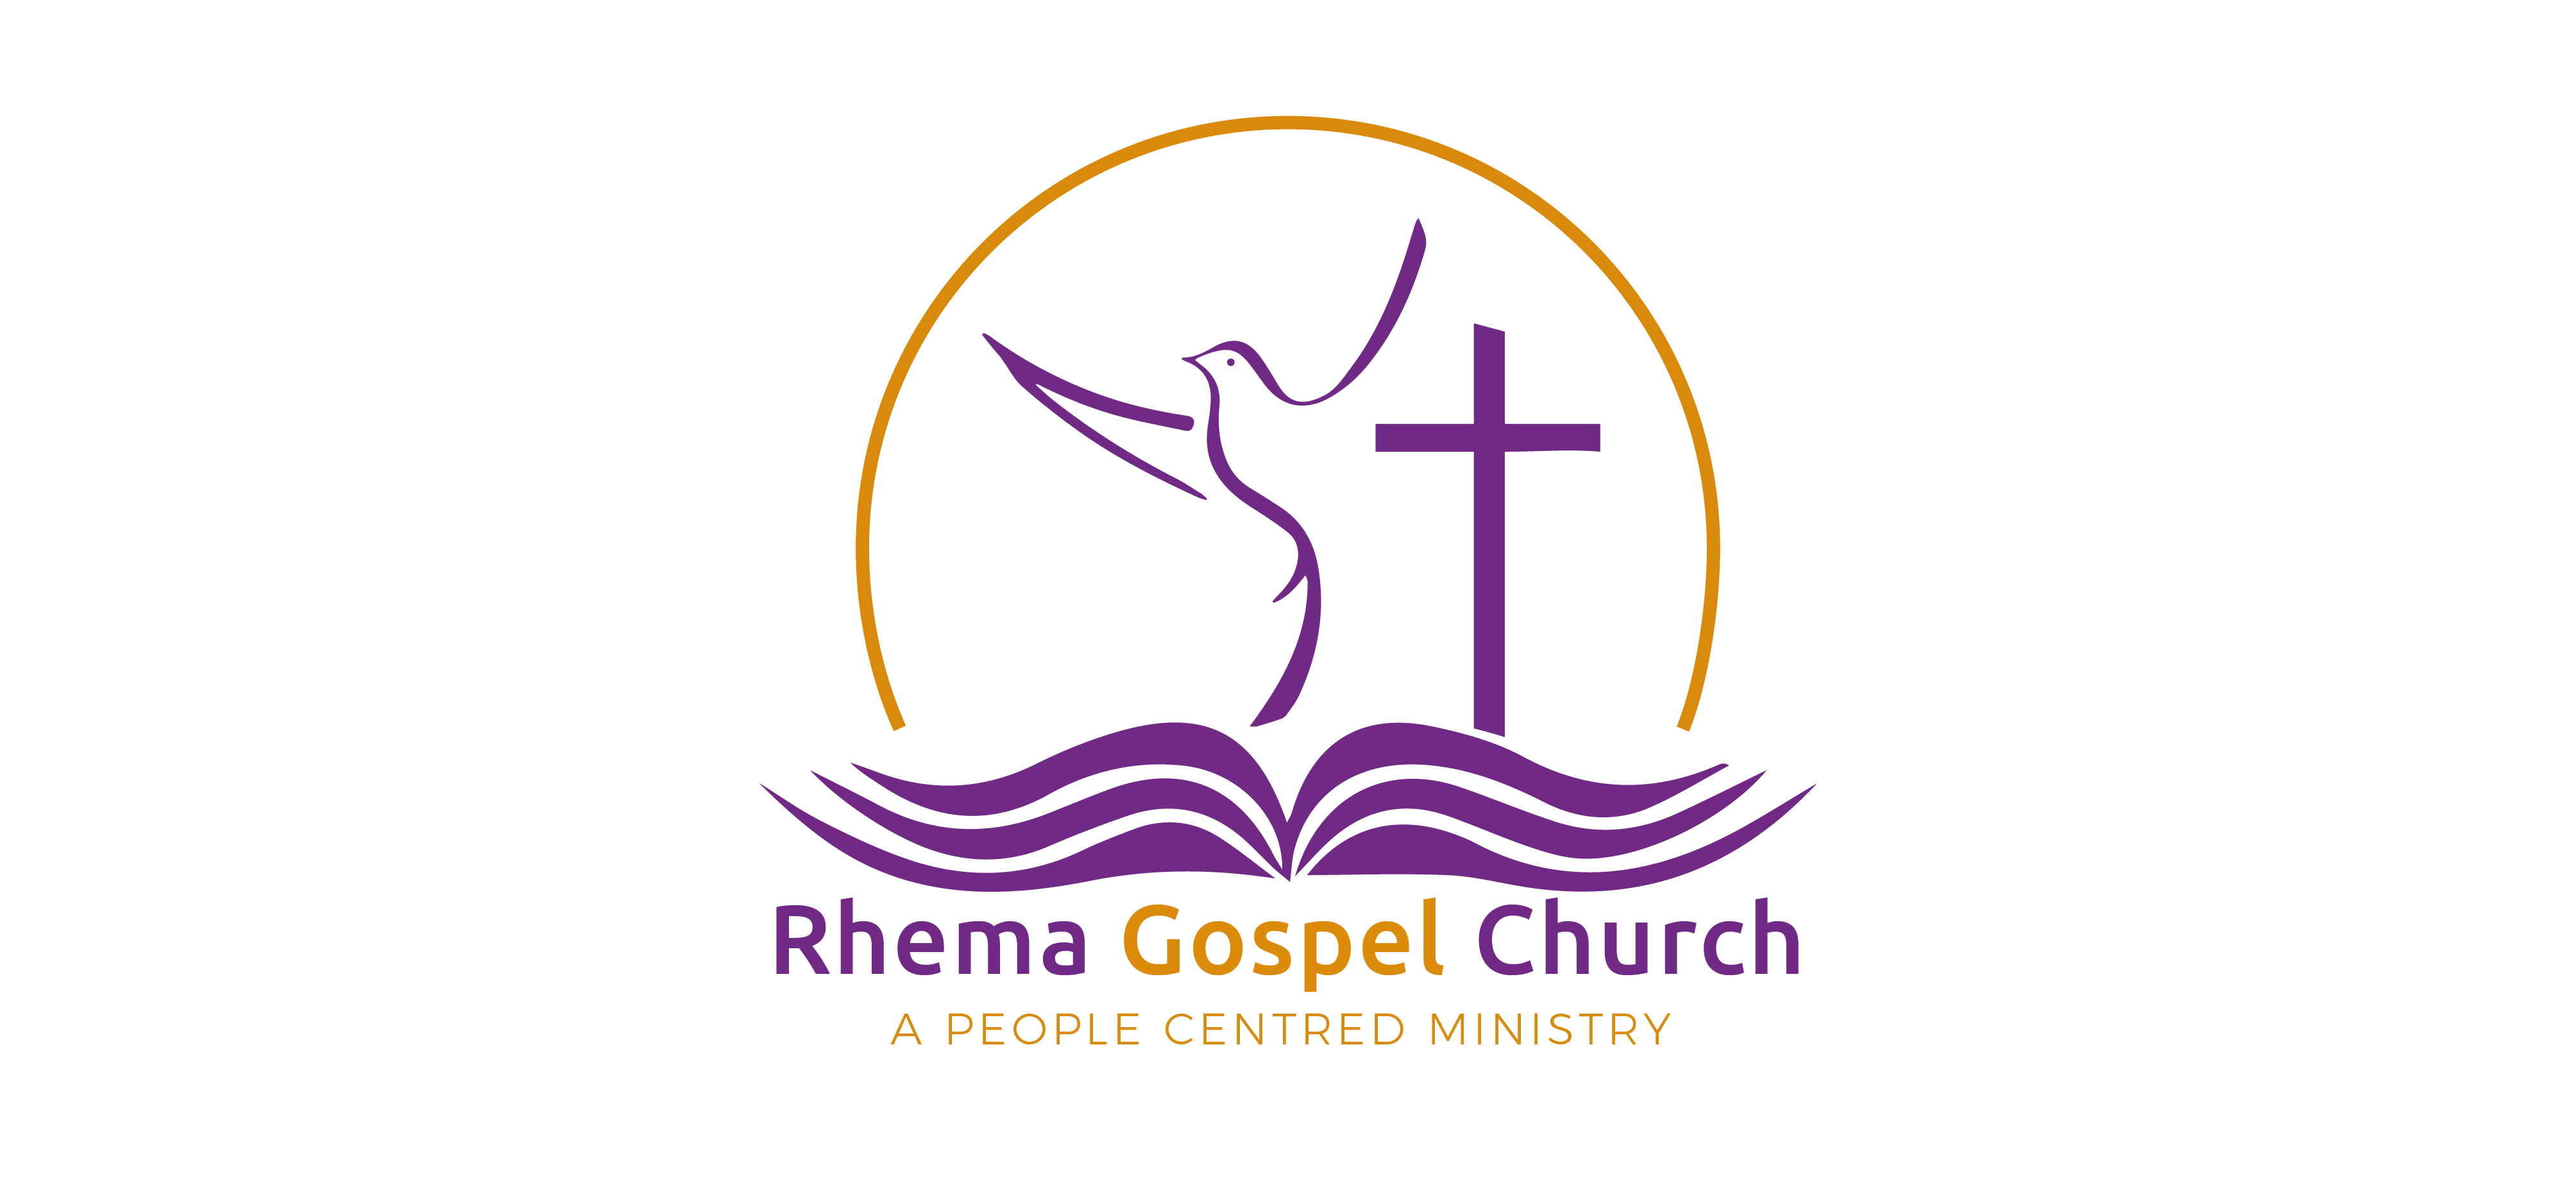 Rhema Gospel Church